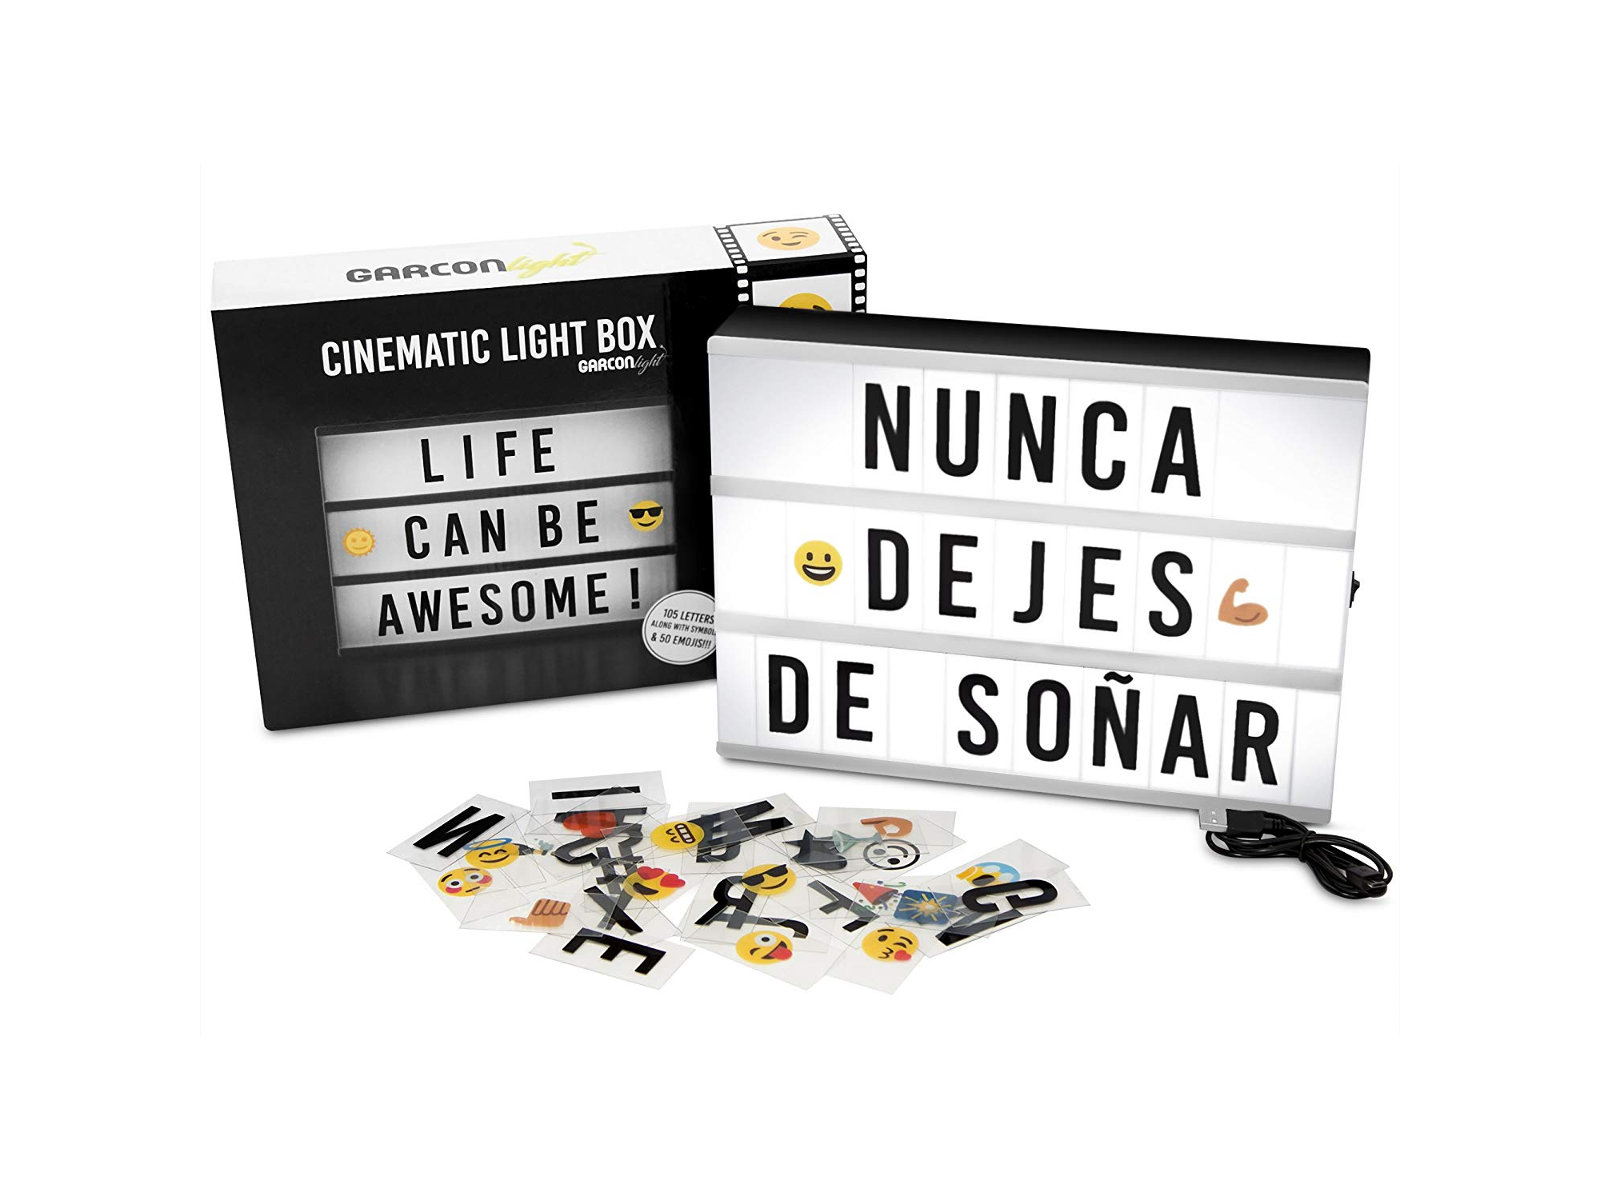 Arma Tus Frases Motivacionales Con Cinematic Light Box